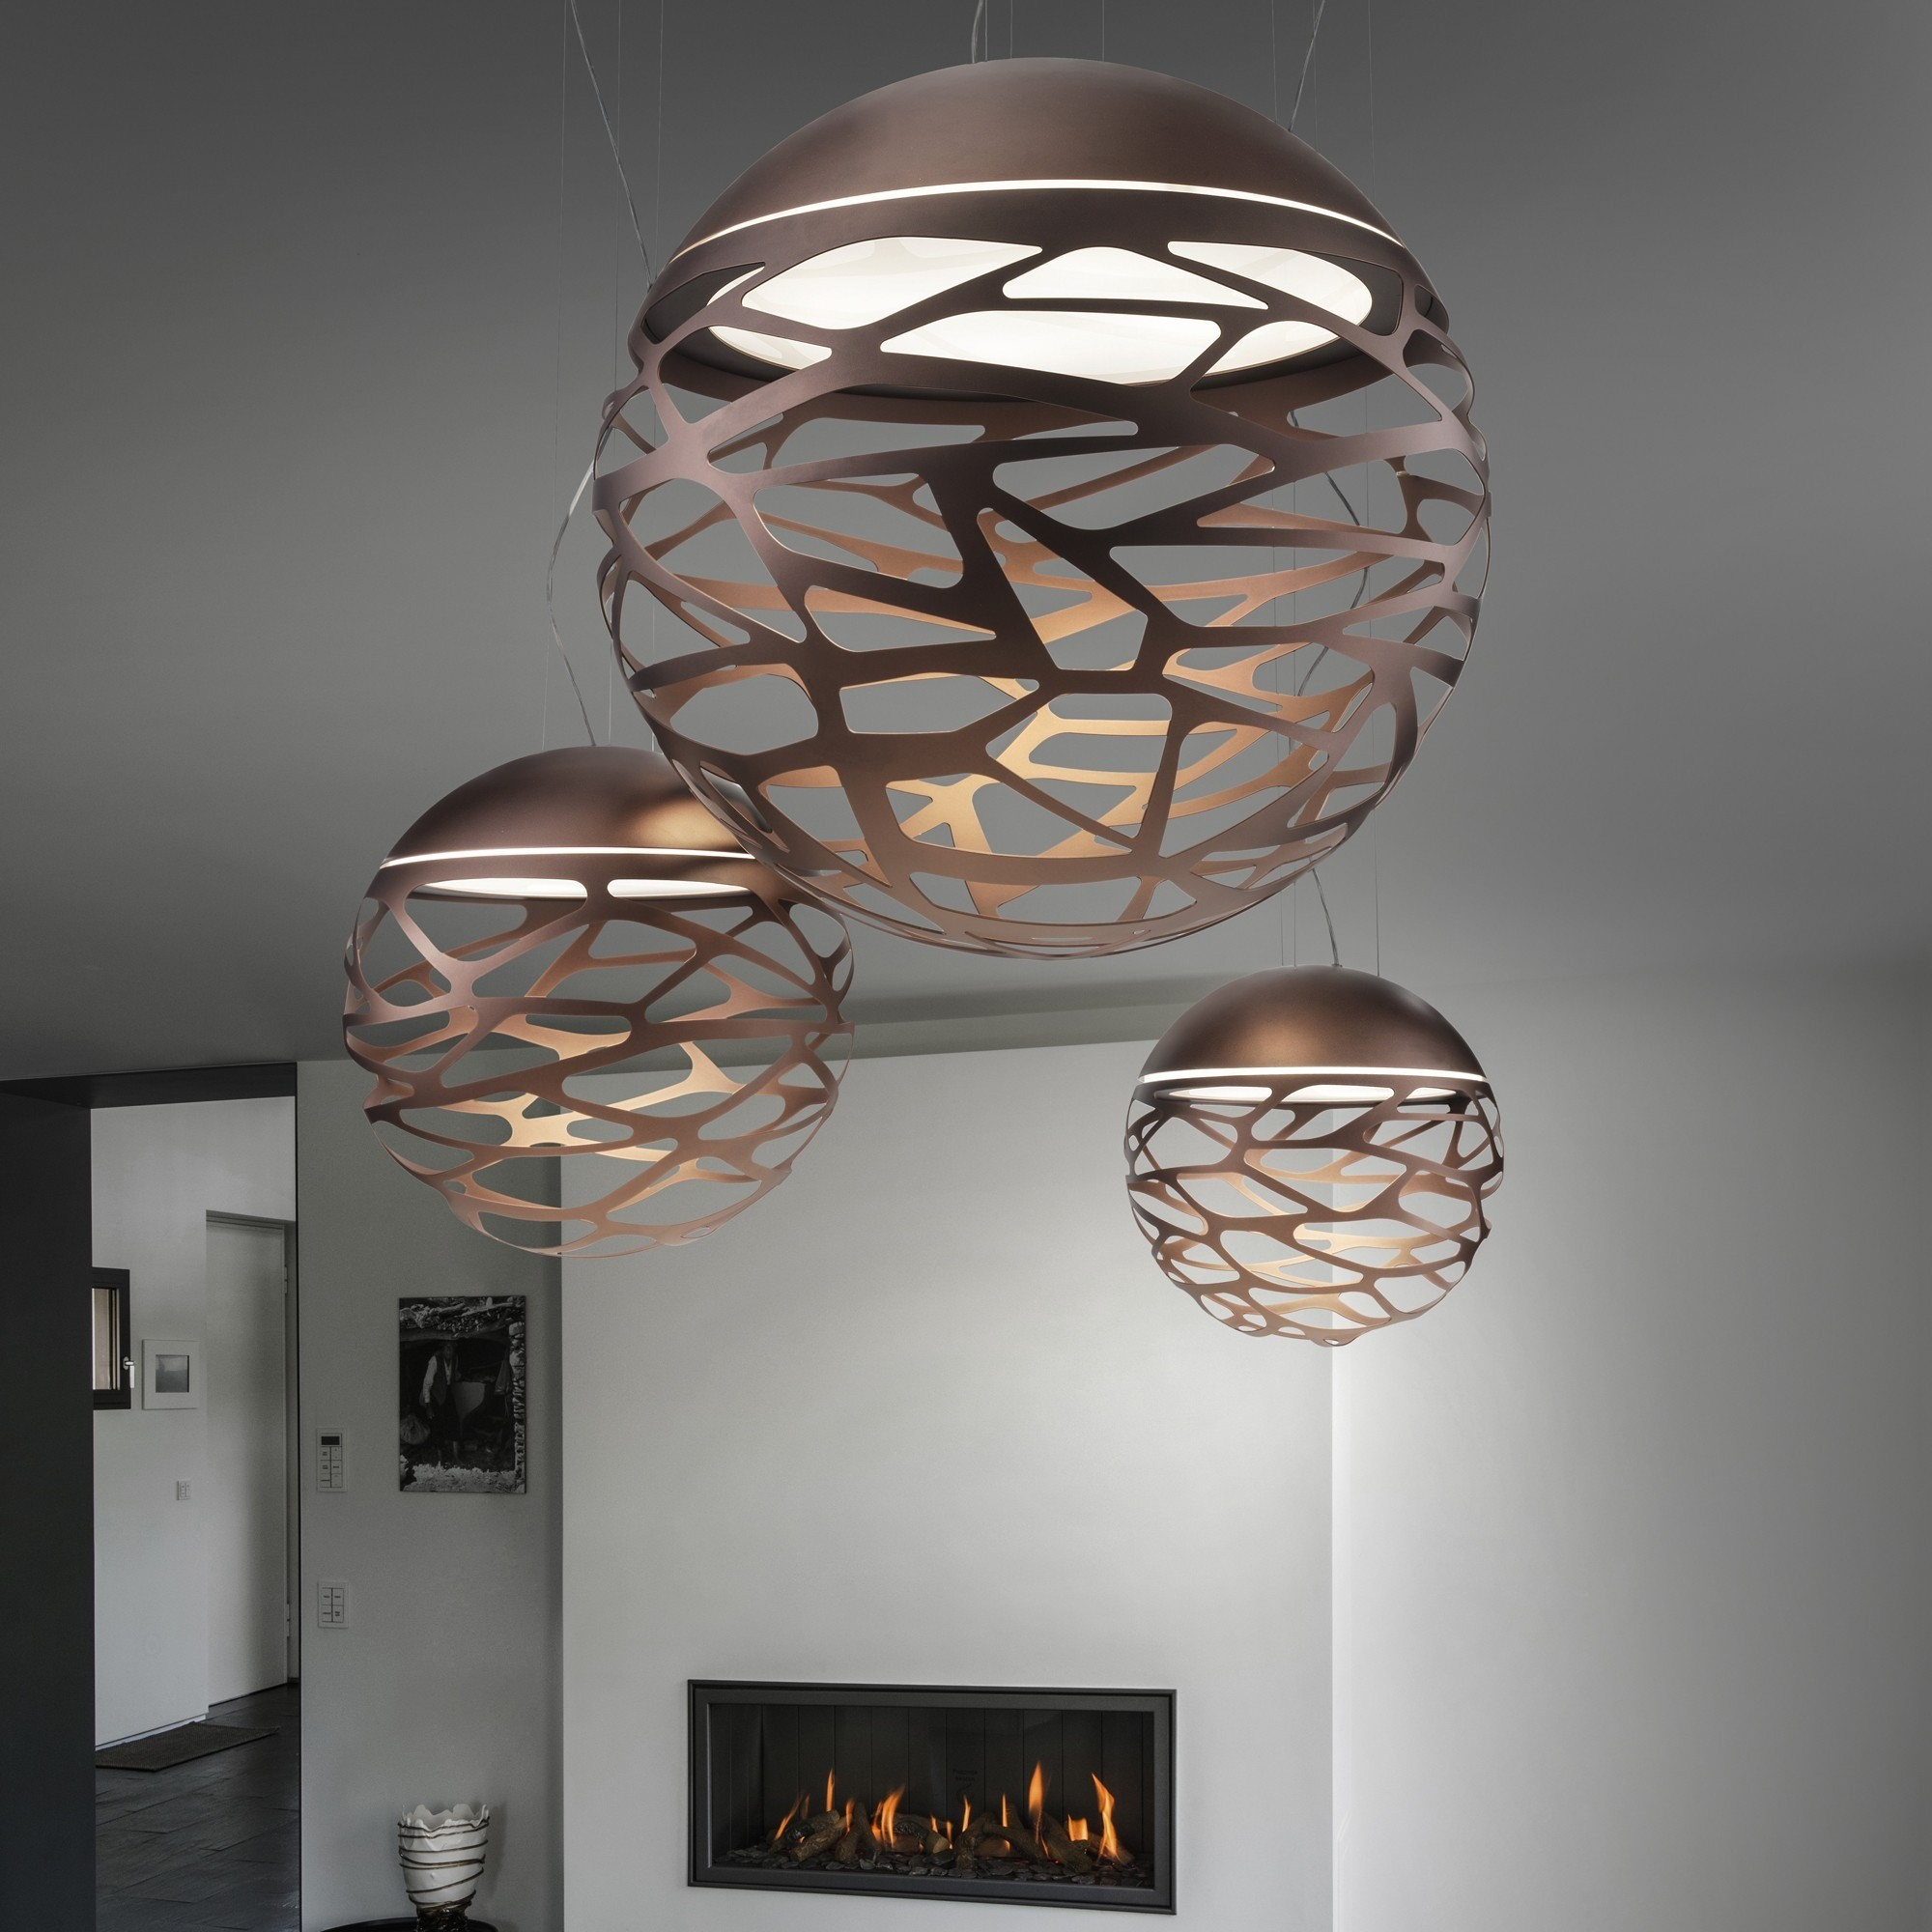 Lampe suspension design italien